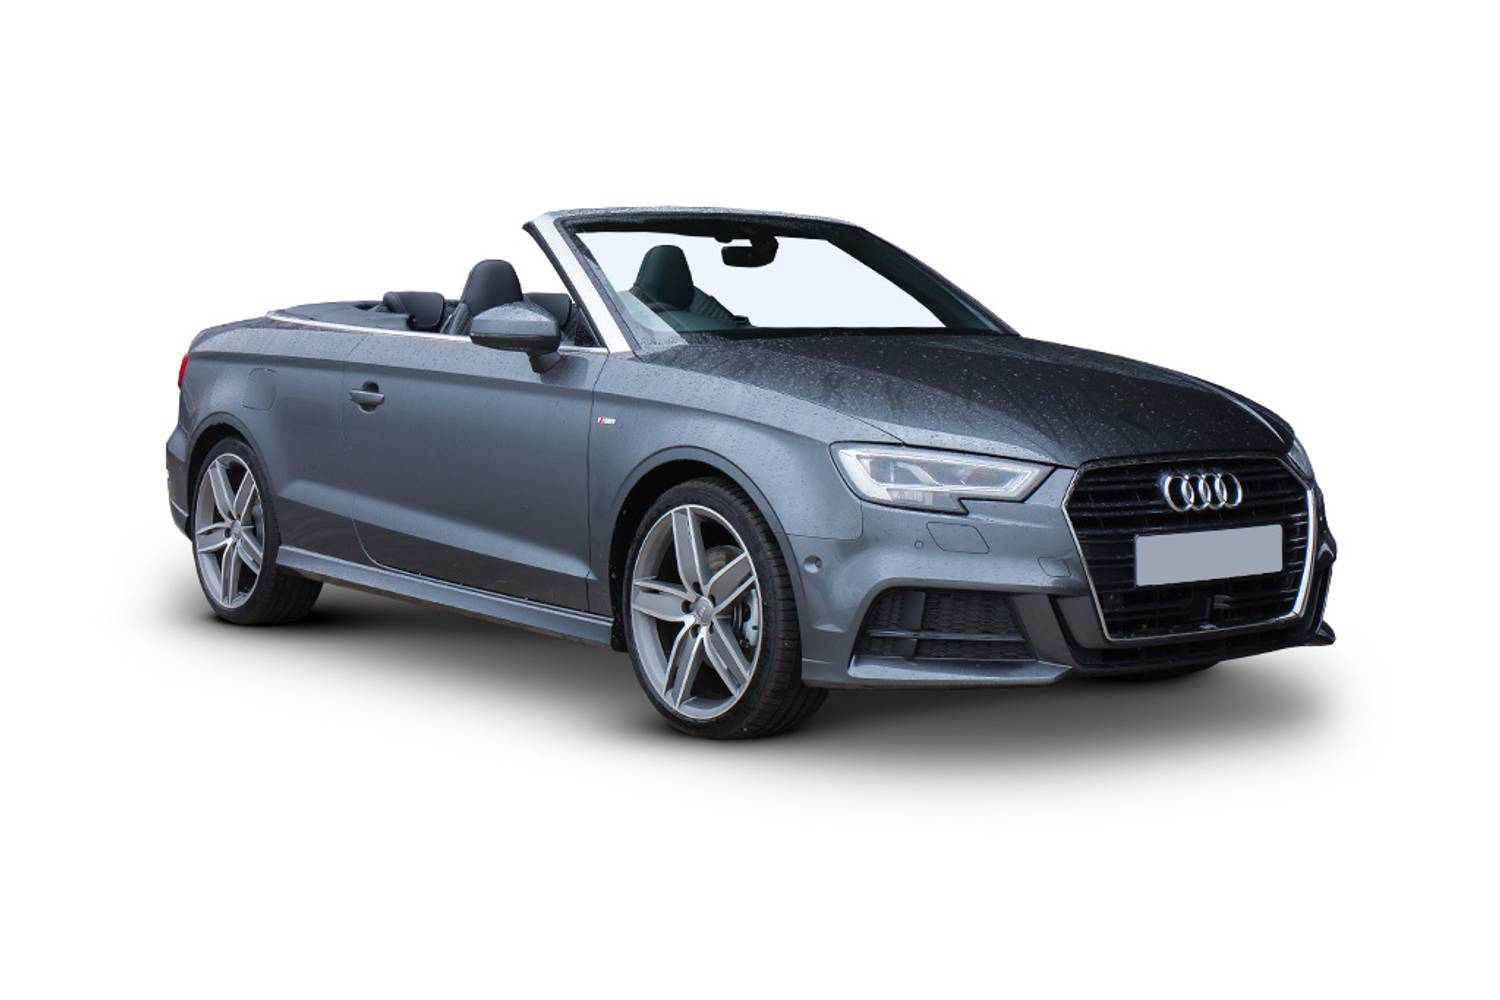 new audi a3 cabriolet 1 4 tfsi sport 2 door 2016 for sale. Black Bedroom Furniture Sets. Home Design Ideas